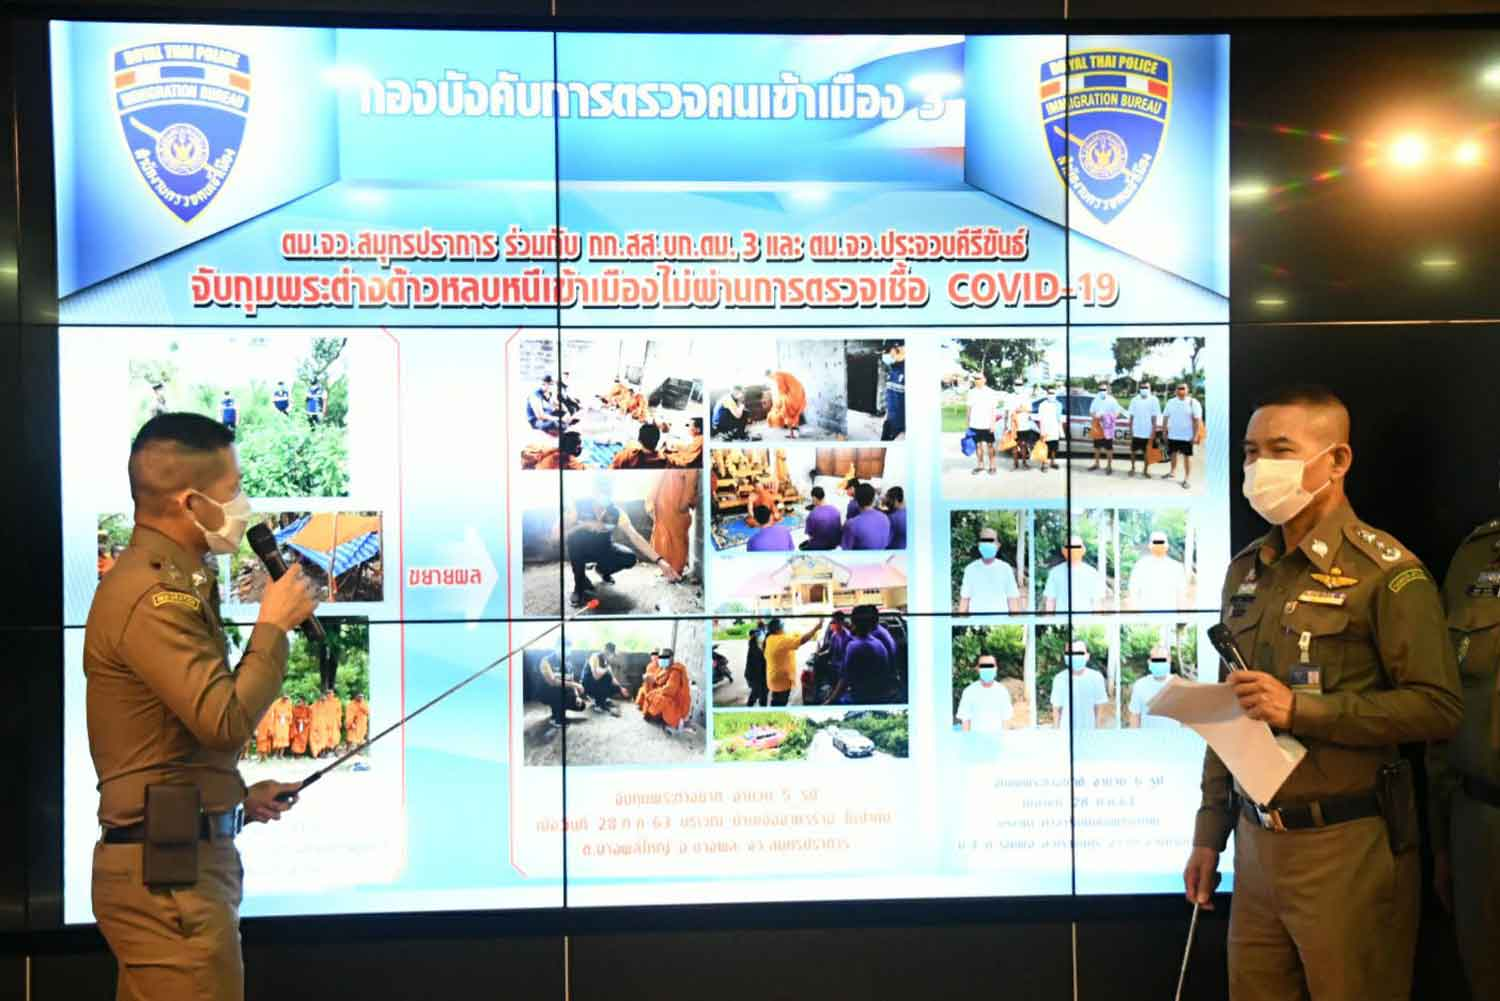 Immigration police officers hold a press briefing about the arrests of Cambodian monks who had illegally entered the country to stay in Samut Prakan to collect cash and donations. (Photo: Wassayos Ngamkham)